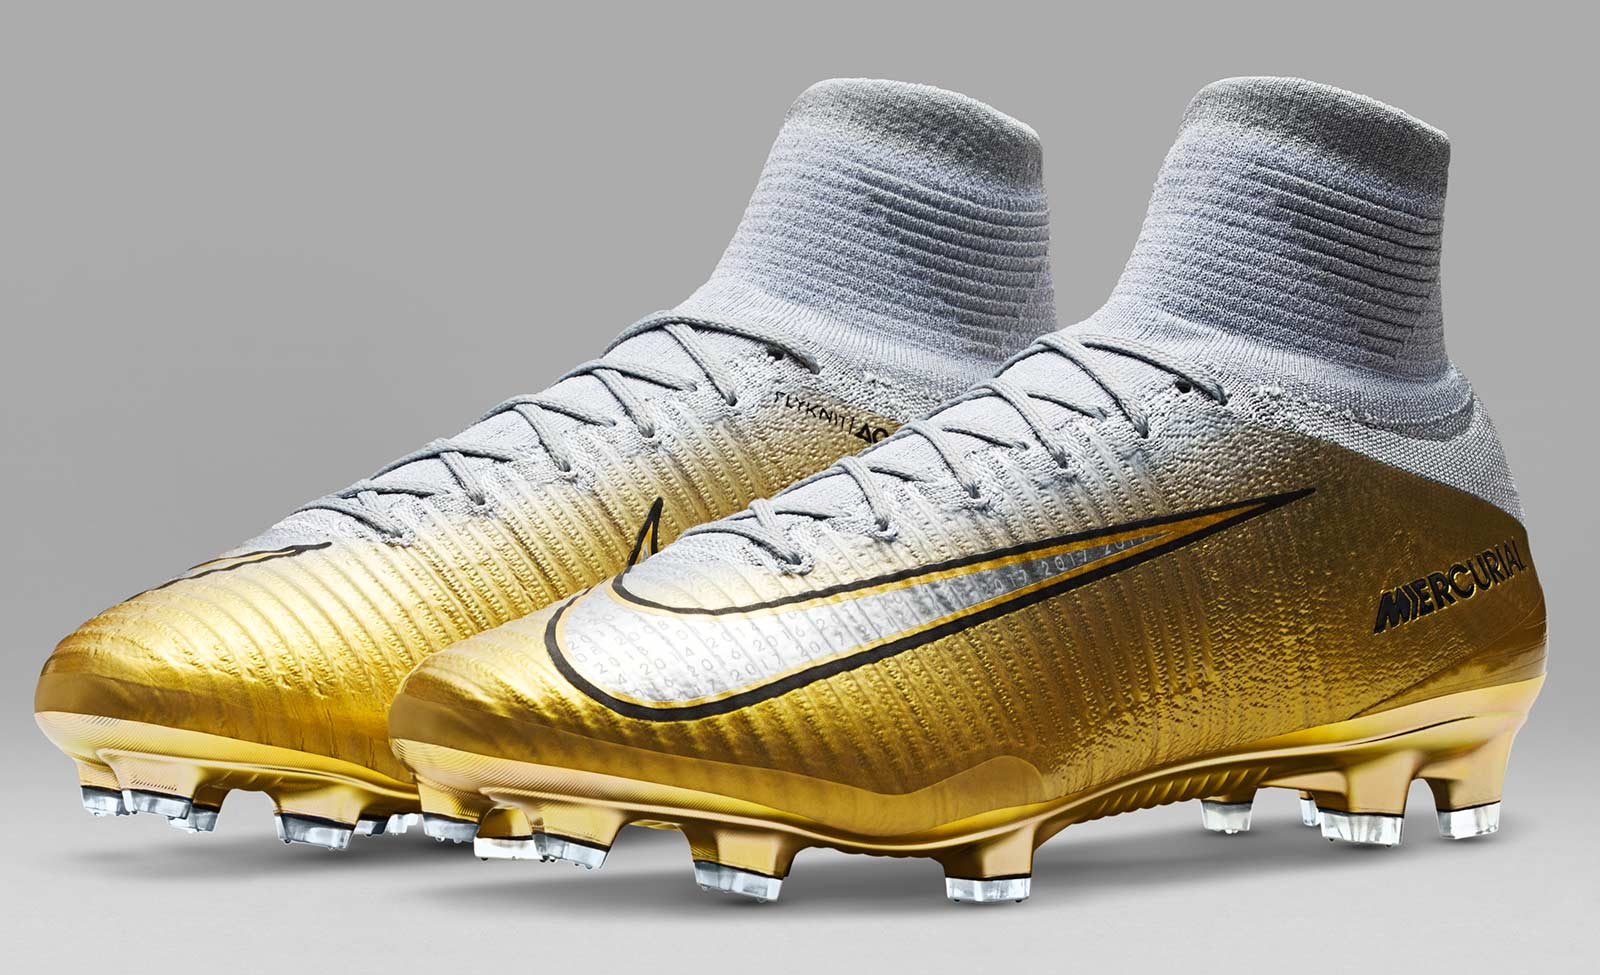 c62cc0d50 To commemorate CR7 winning his fifth Ballon d Or title Nike released a  spectacular gold and white boots for the Portuguese